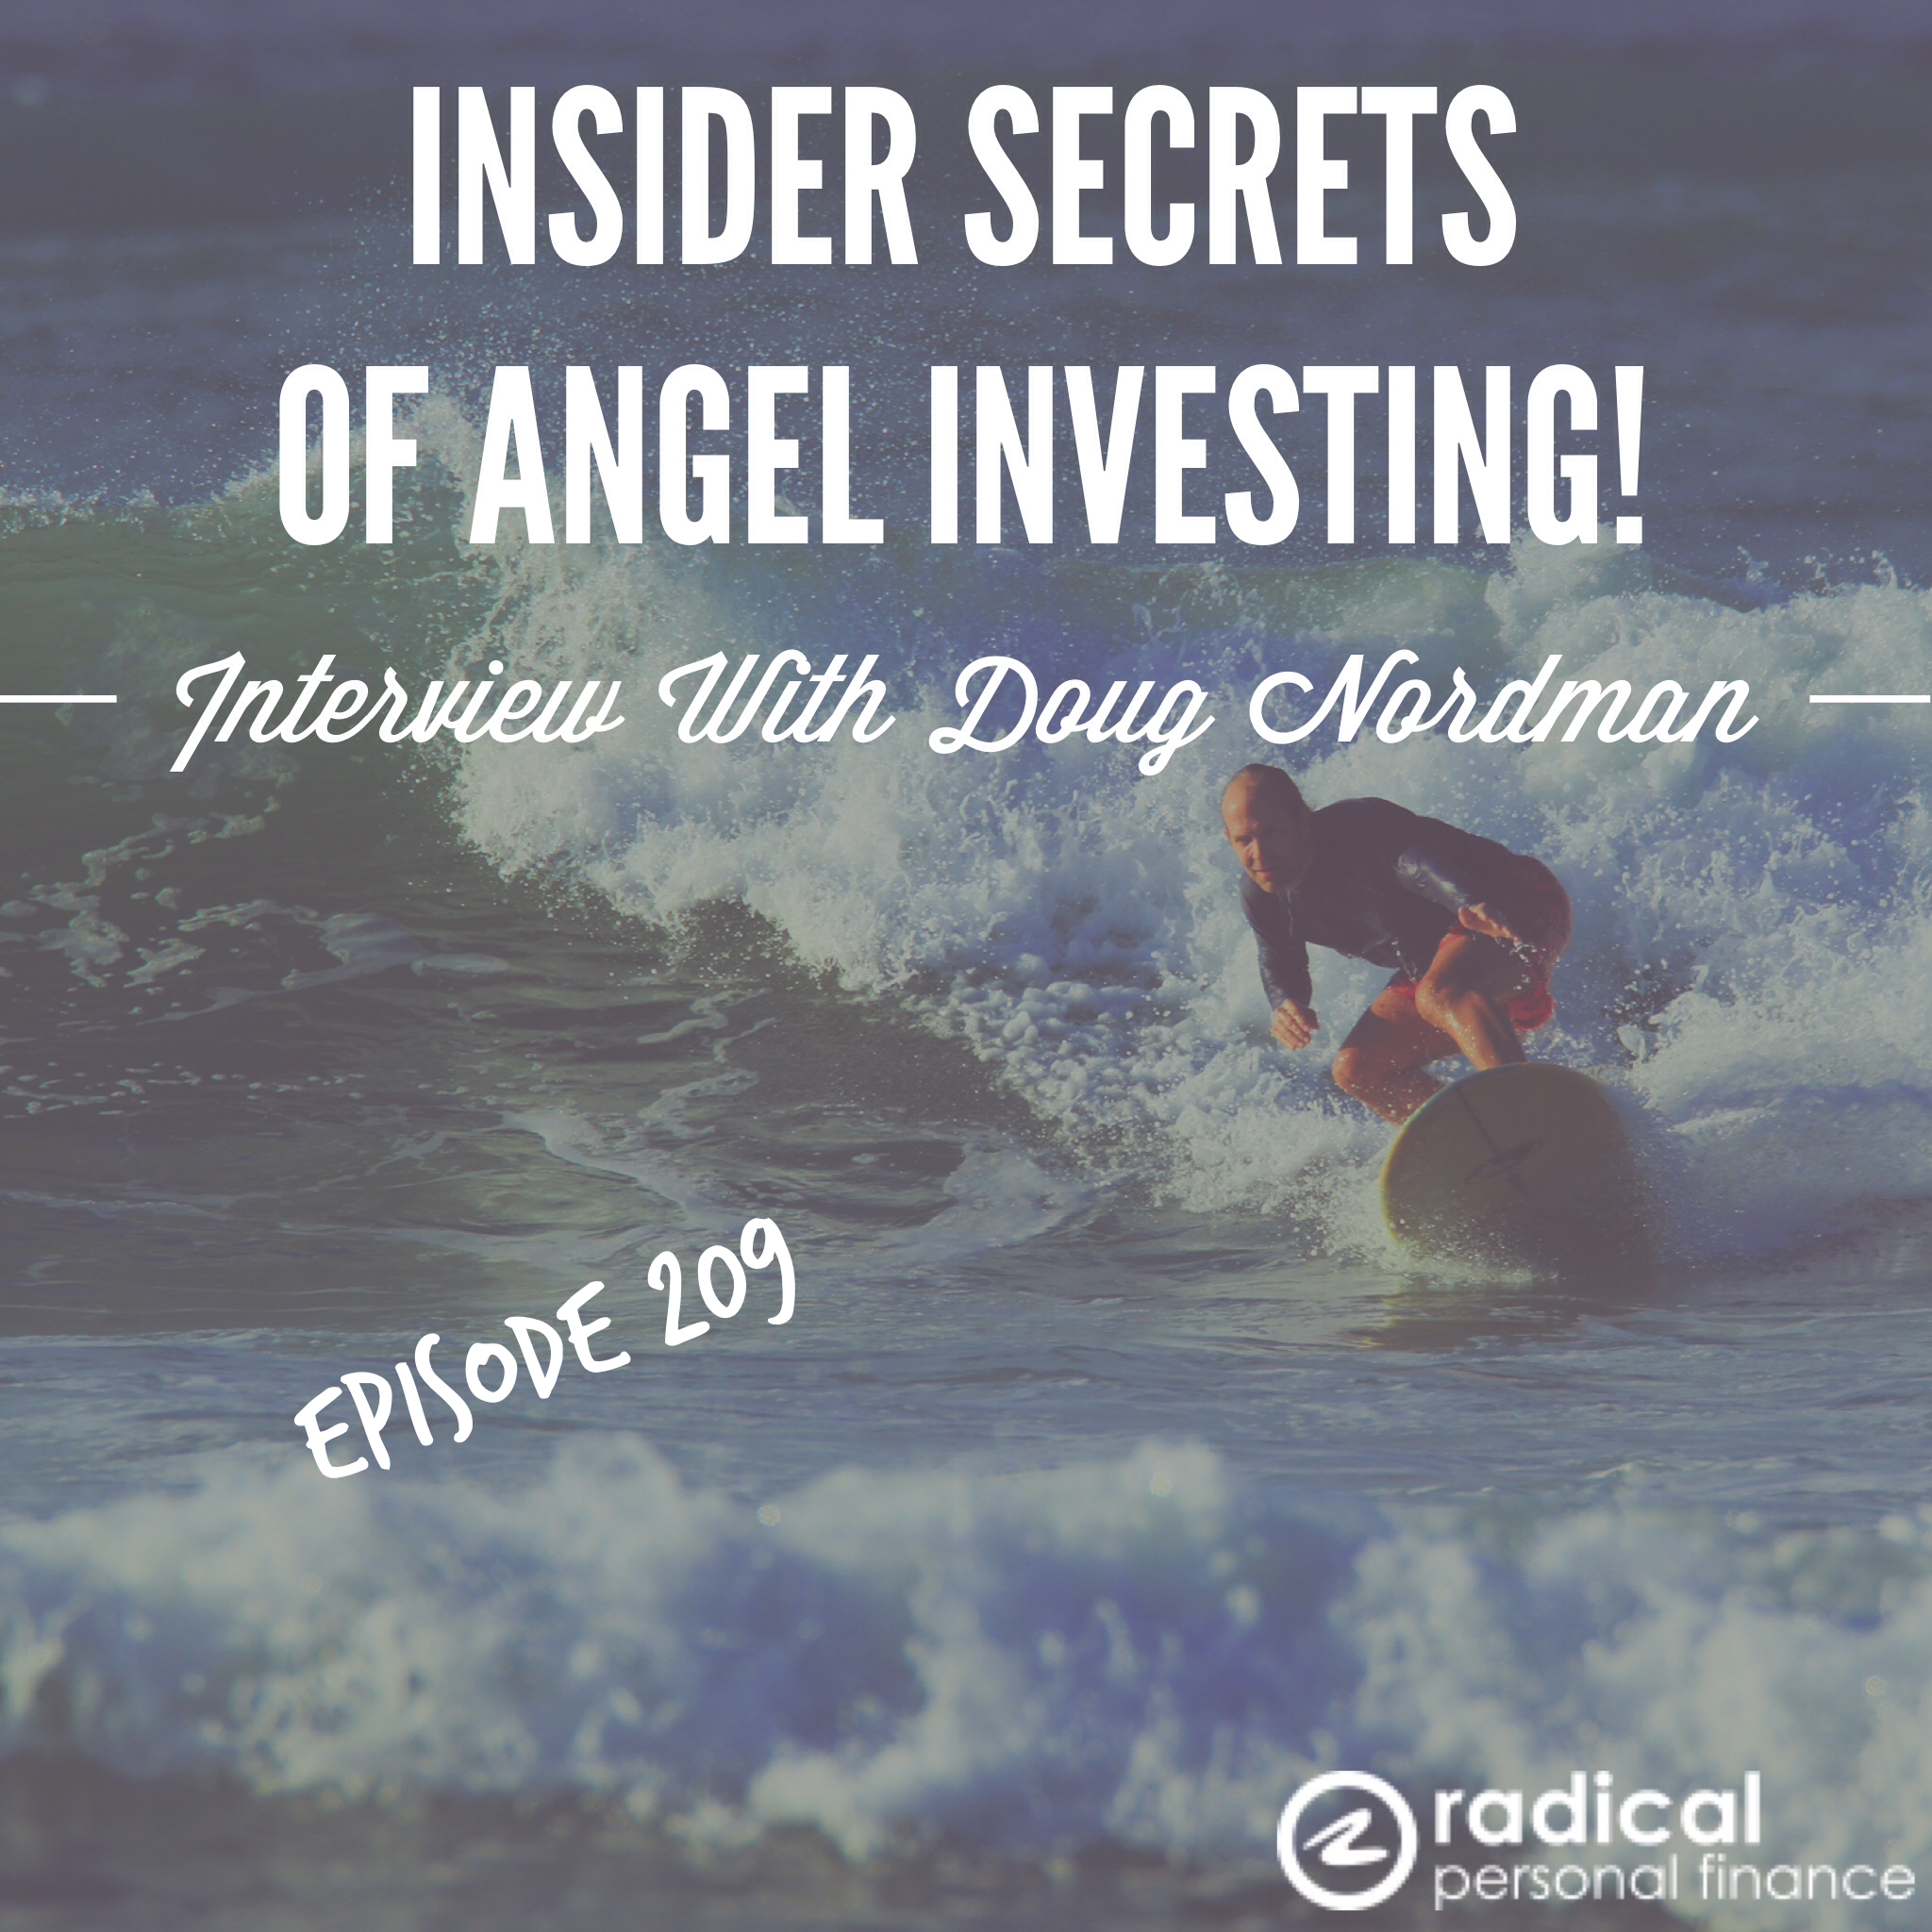 209-The Insider Secrets of Angel Investing! (Or What Angel Investing is Really Like): Interview with Doug Nordman (And, Should I Rent or Buy?)